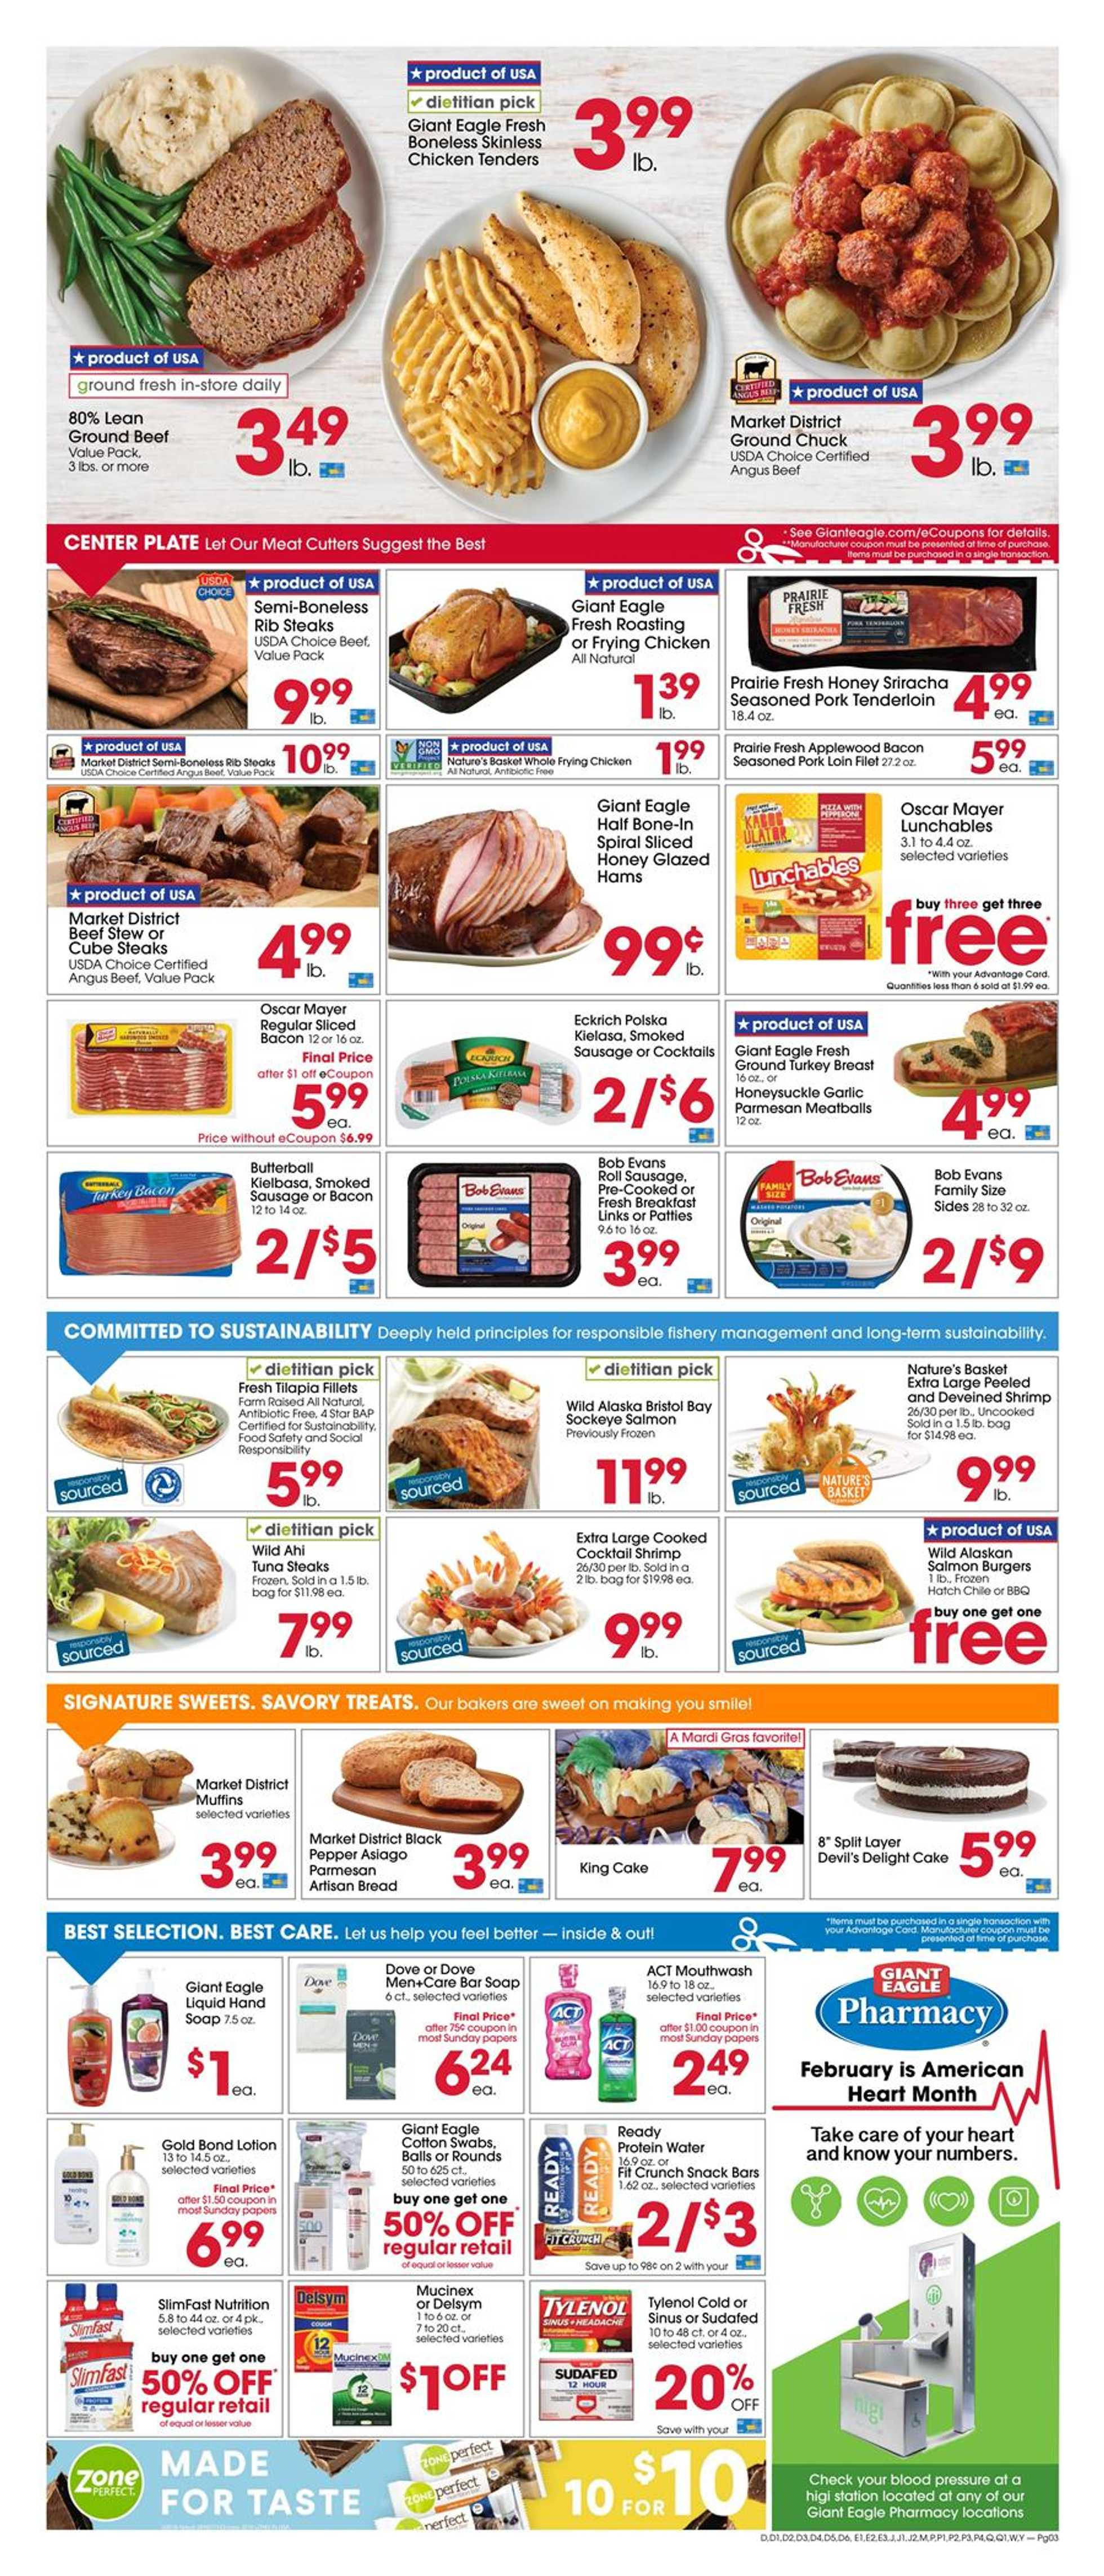 Giant Eagle - promo starting from 02/20/20 to 02/26/20 - page 3.